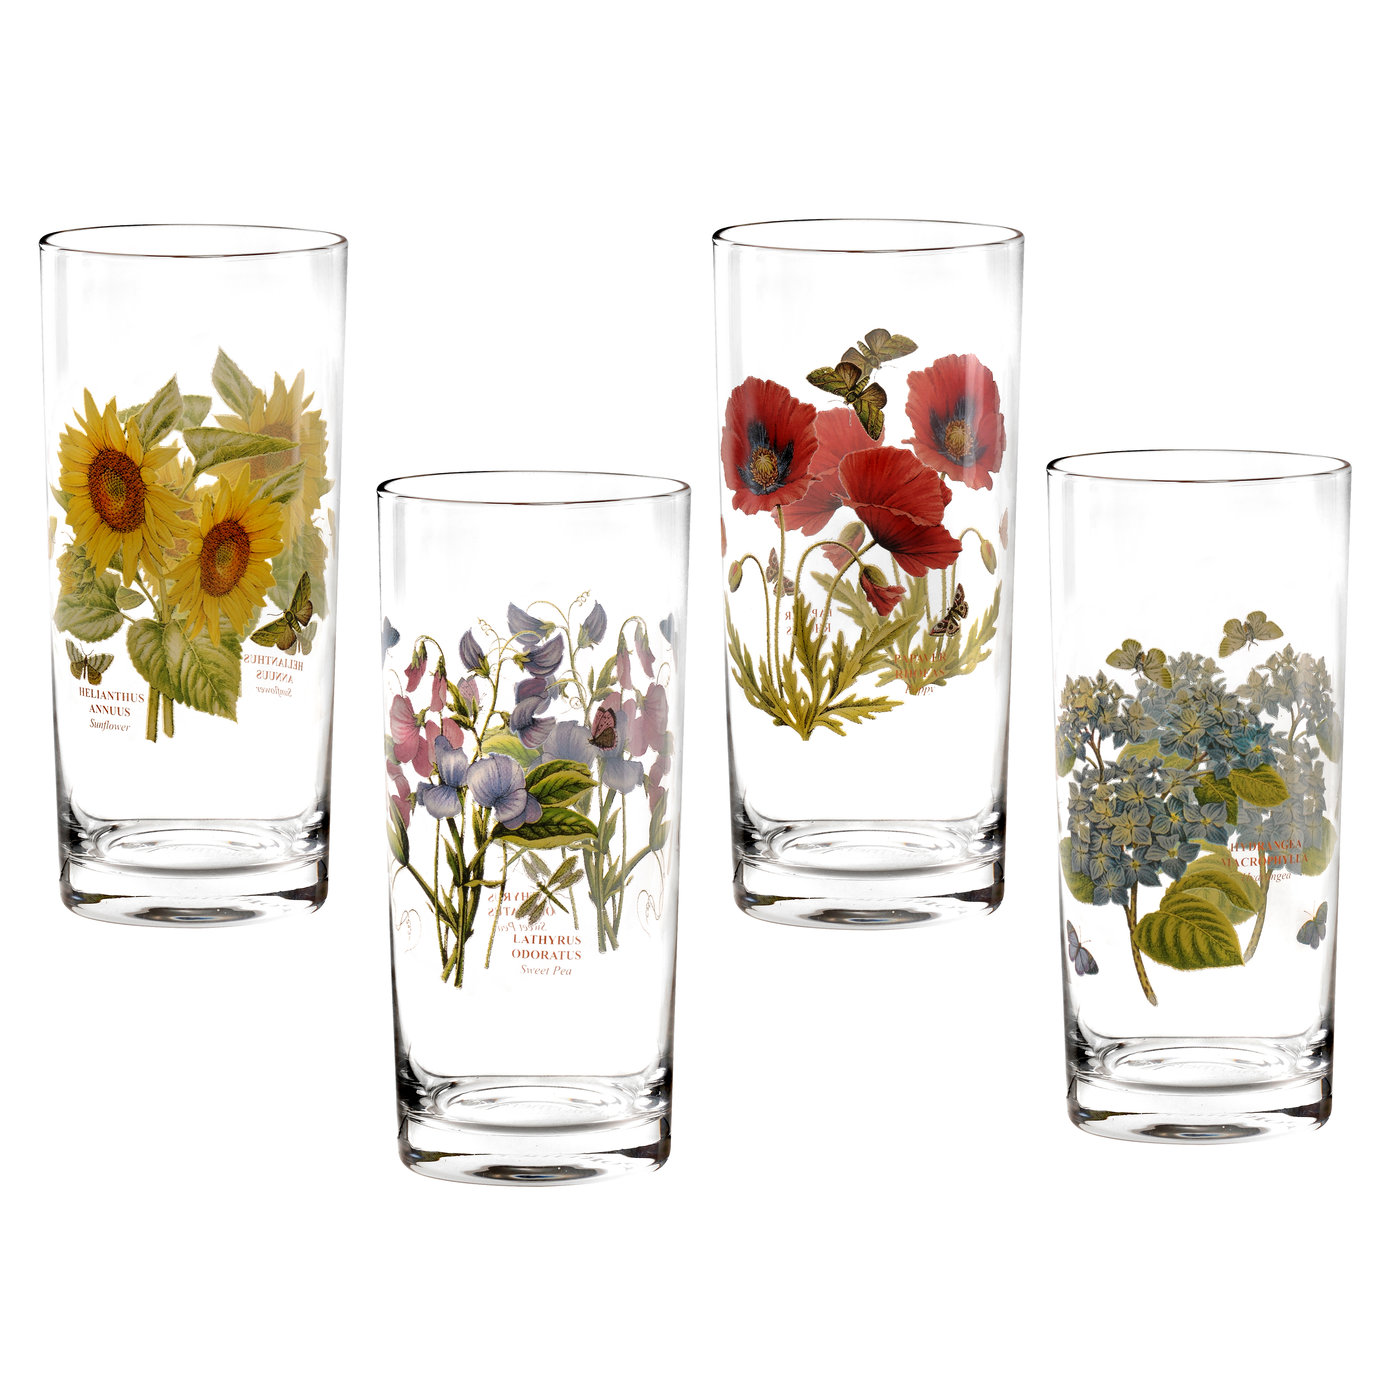 Portmeirion Botanic Garden Set of 4 Highball Glasses image number 0